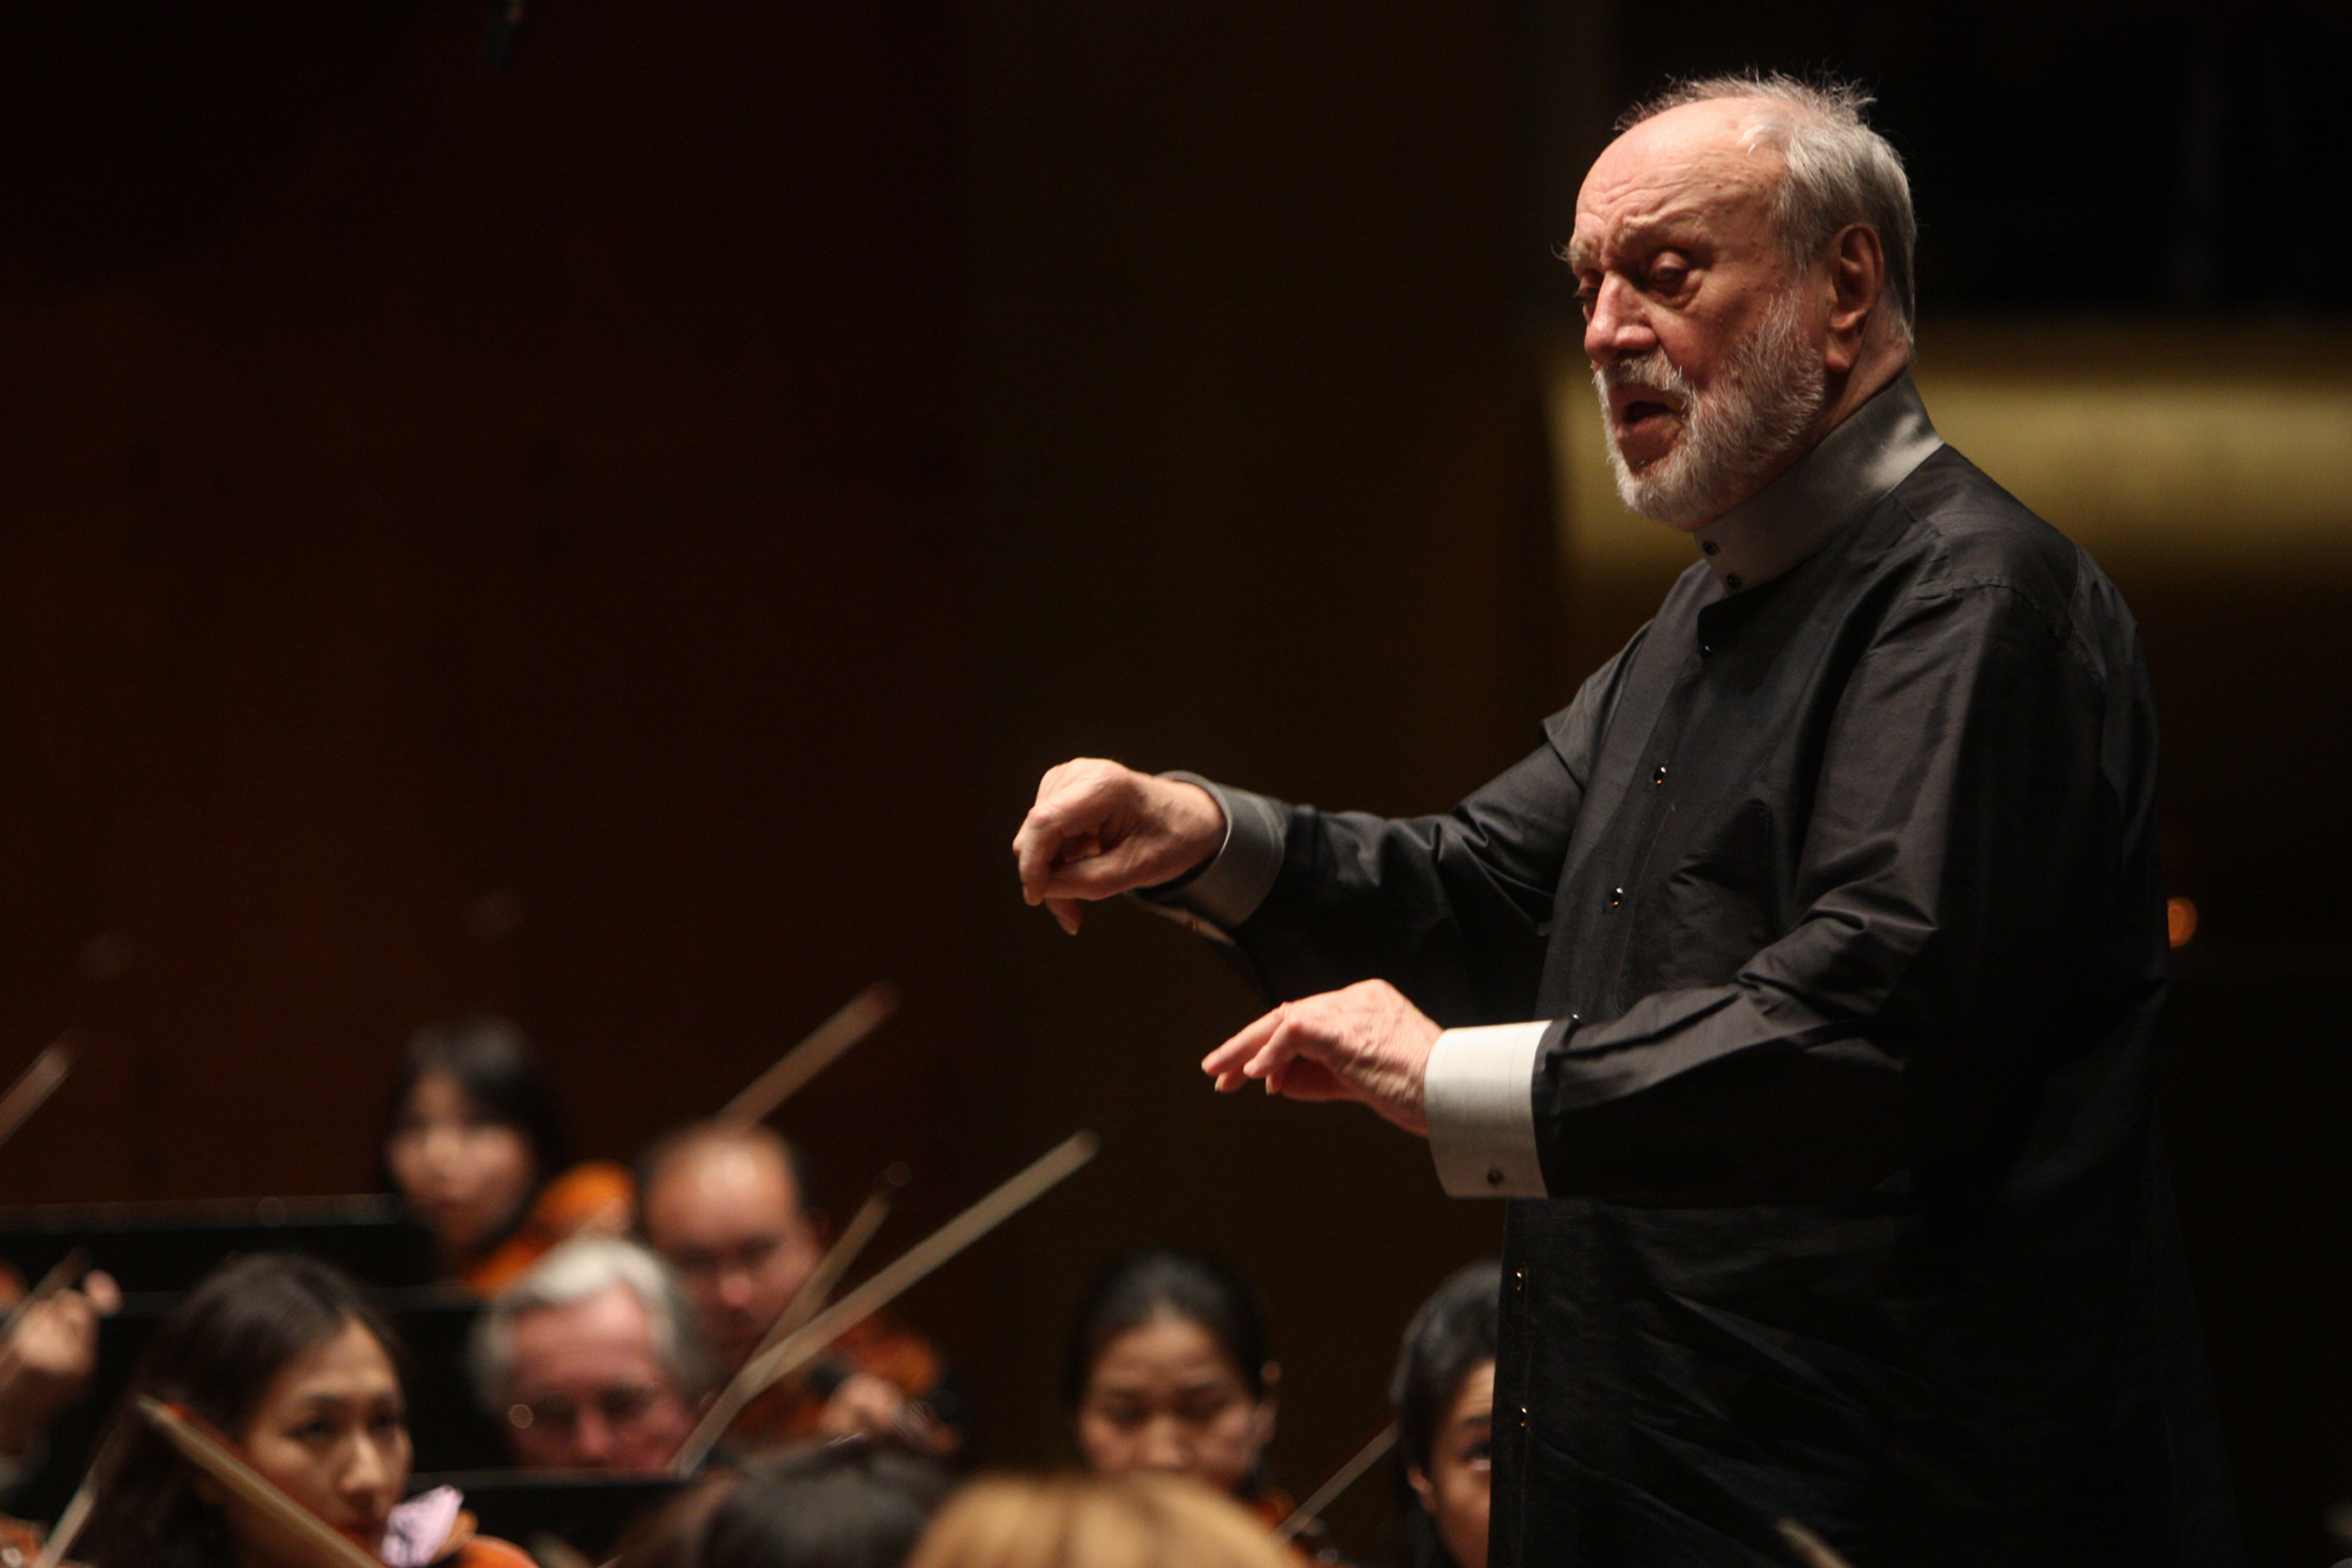 Kurt Masur leading the New York Philharmonic in Beethoven's  Symphony No. 1 in C major  at Avery Fisher Hall on May 12, 2010.